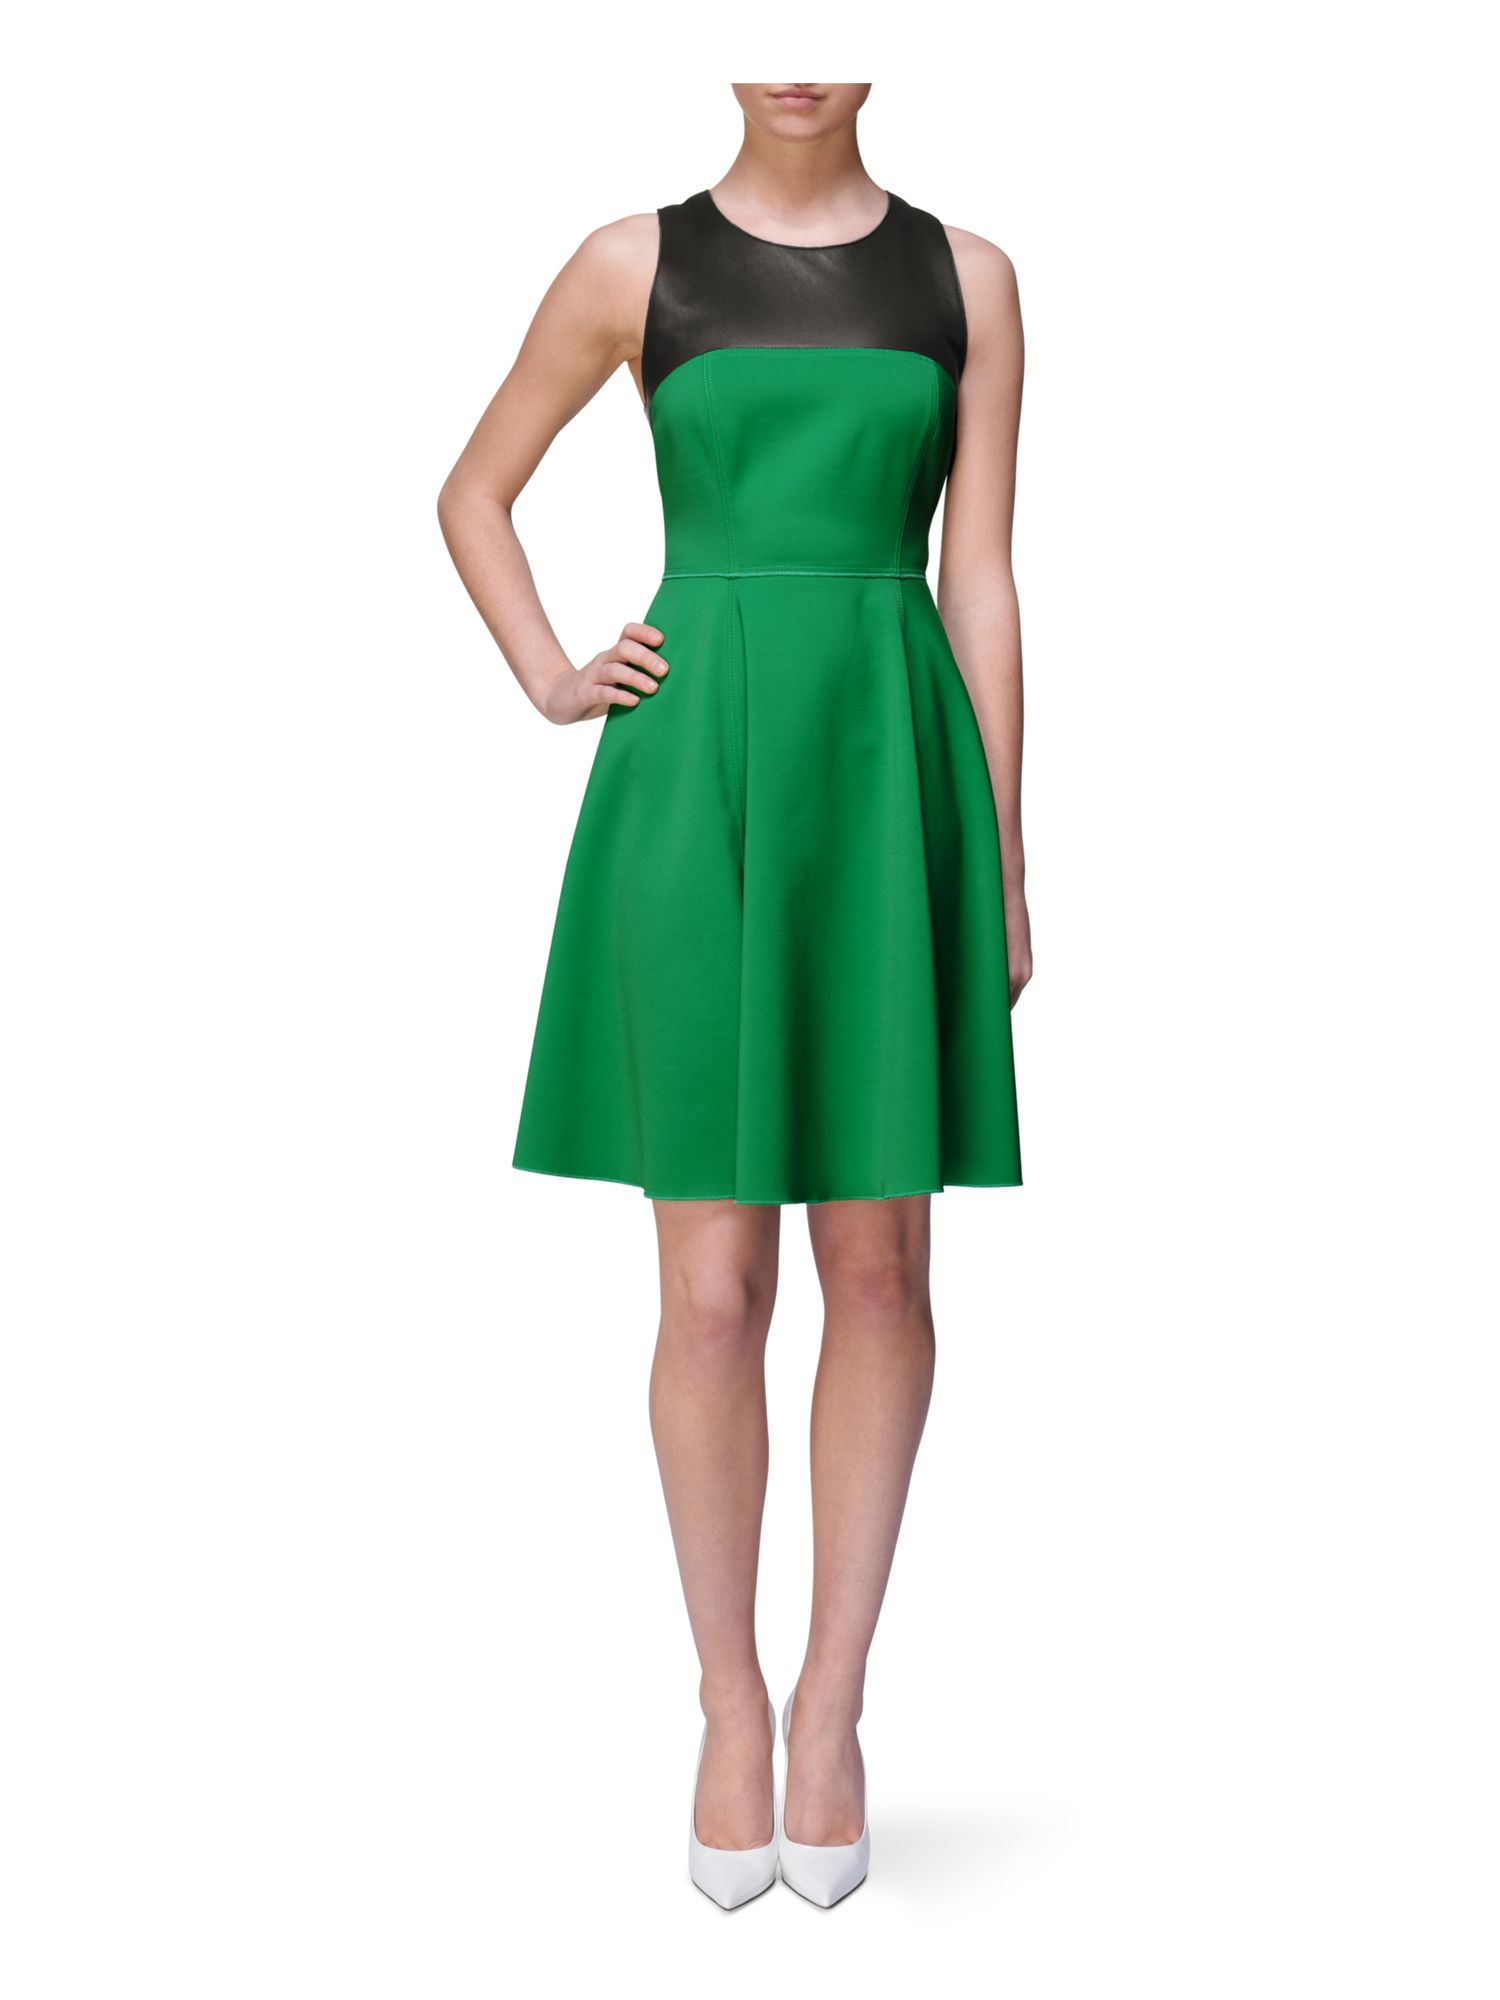 Sleeveless racer dress